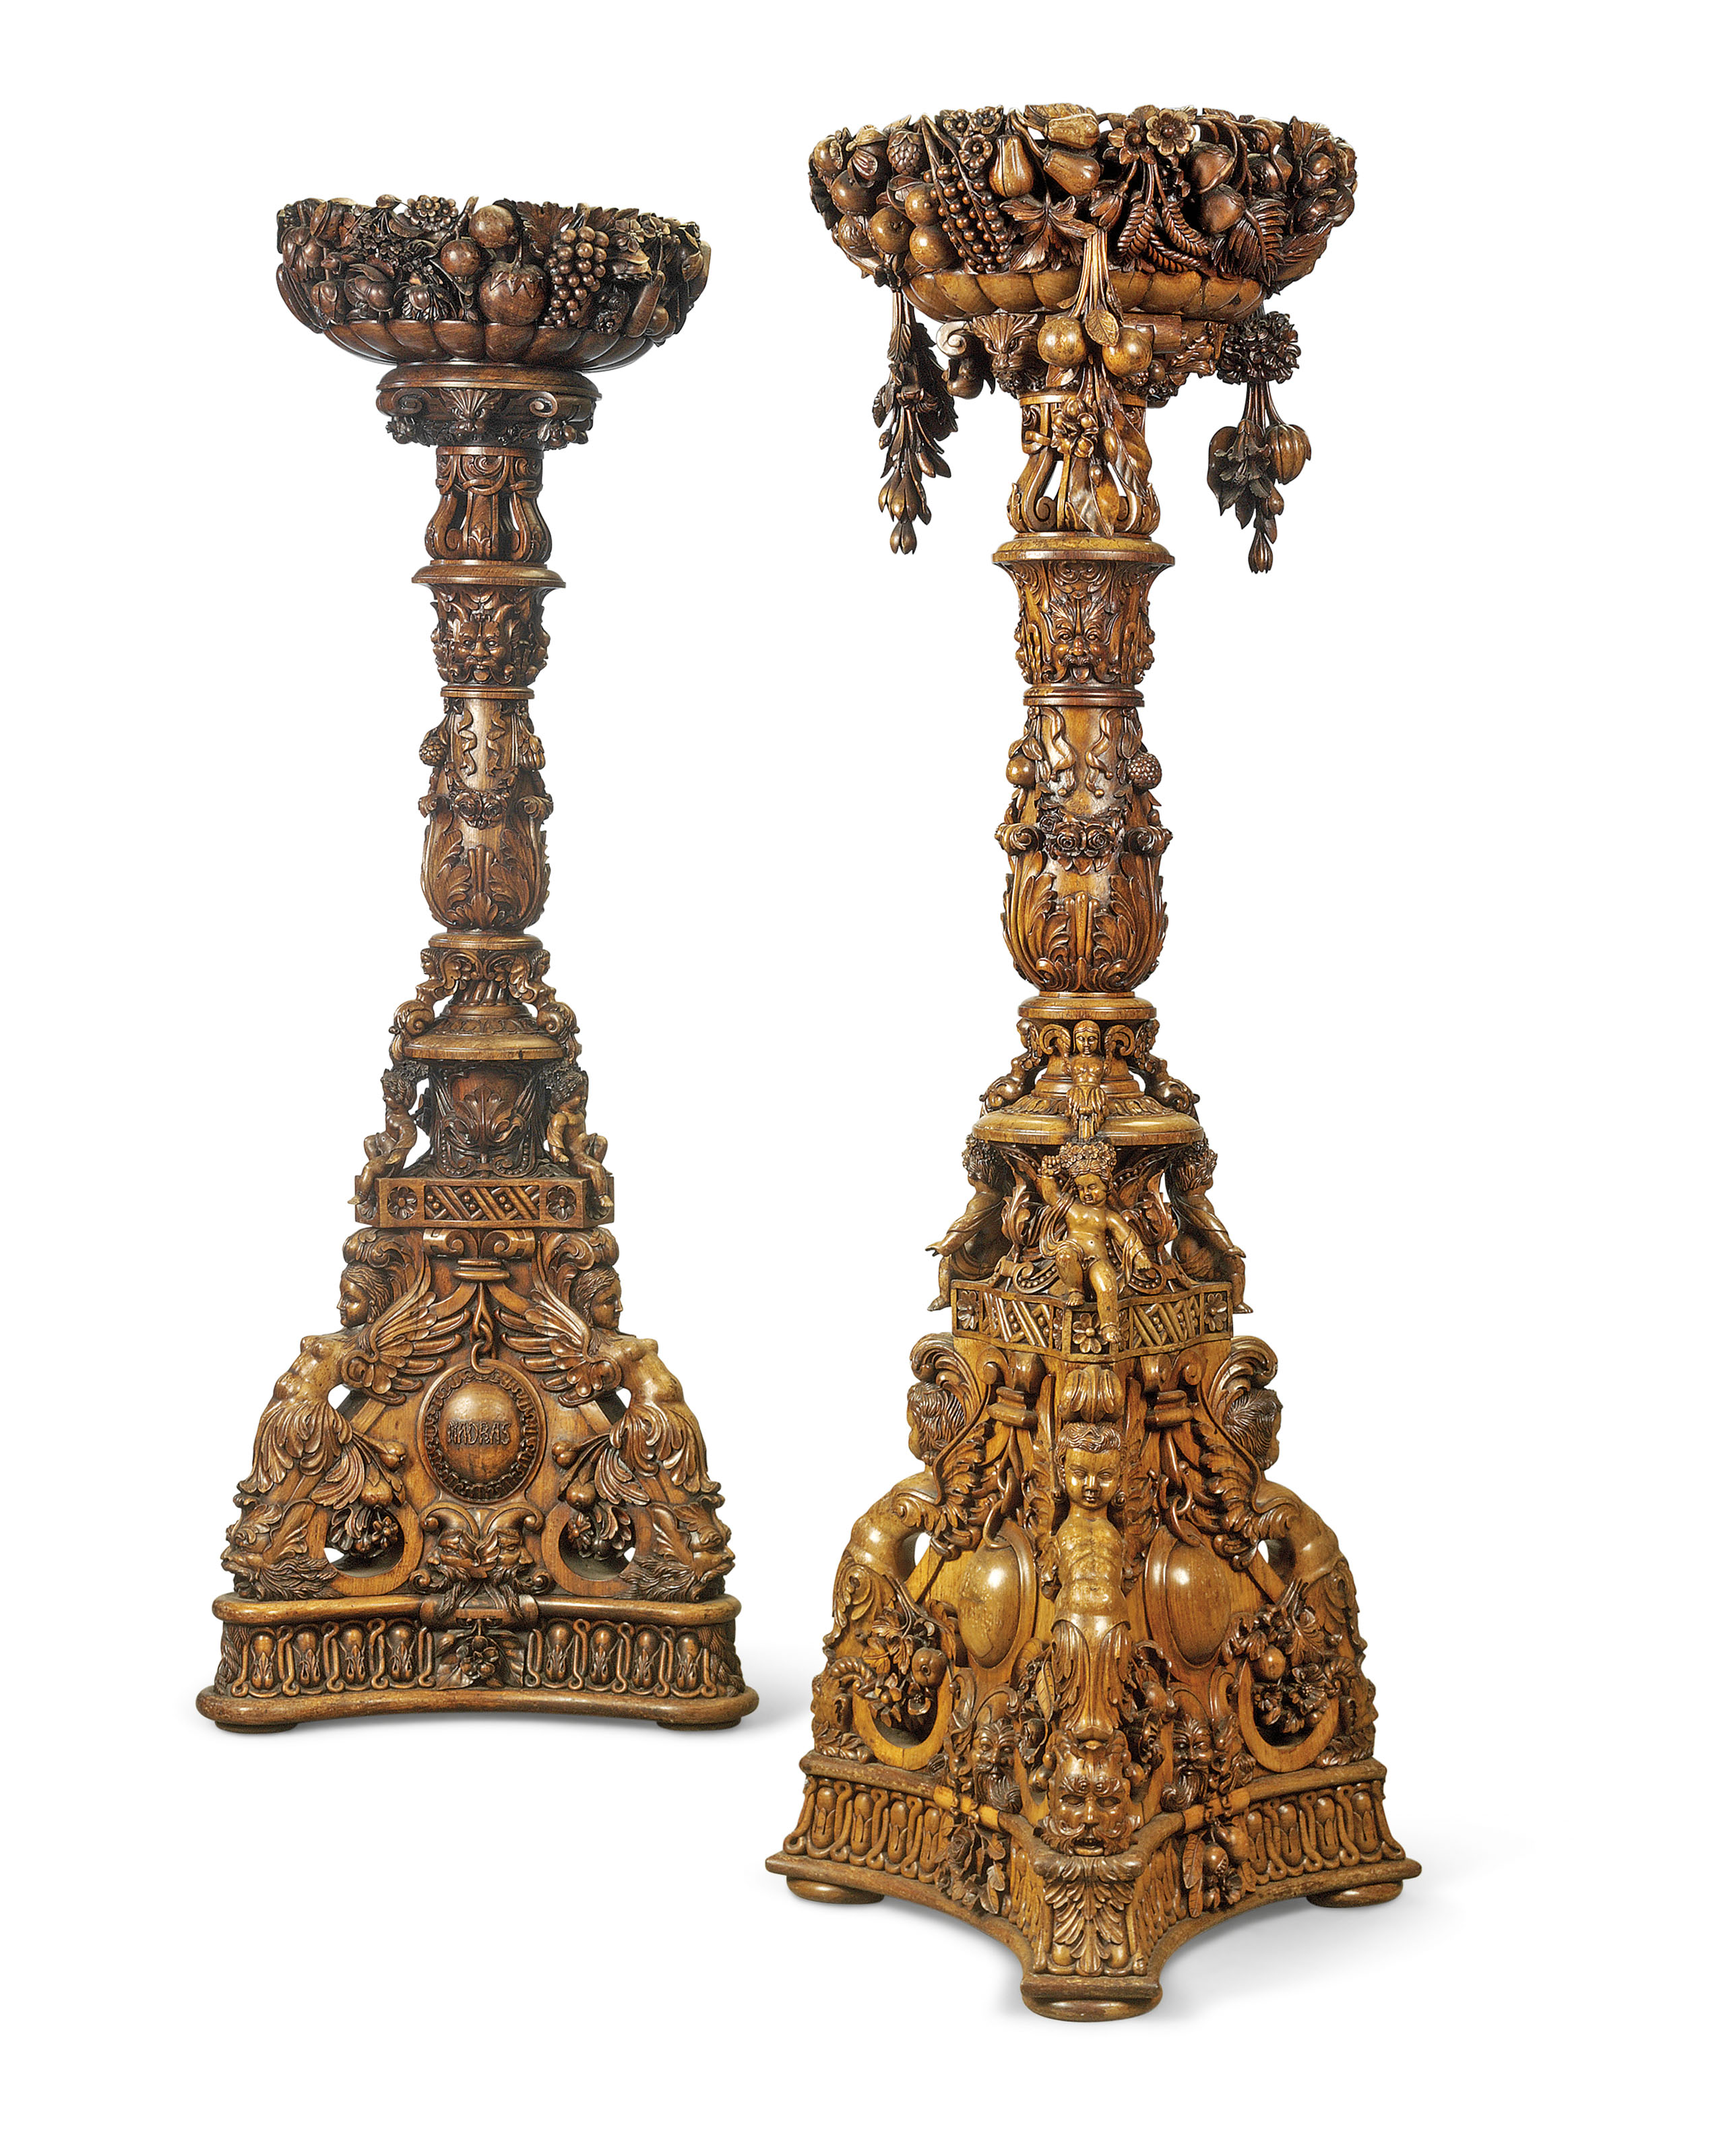 A NEAR PAIR OF INDIAN ROSEWOOD TORCHERES